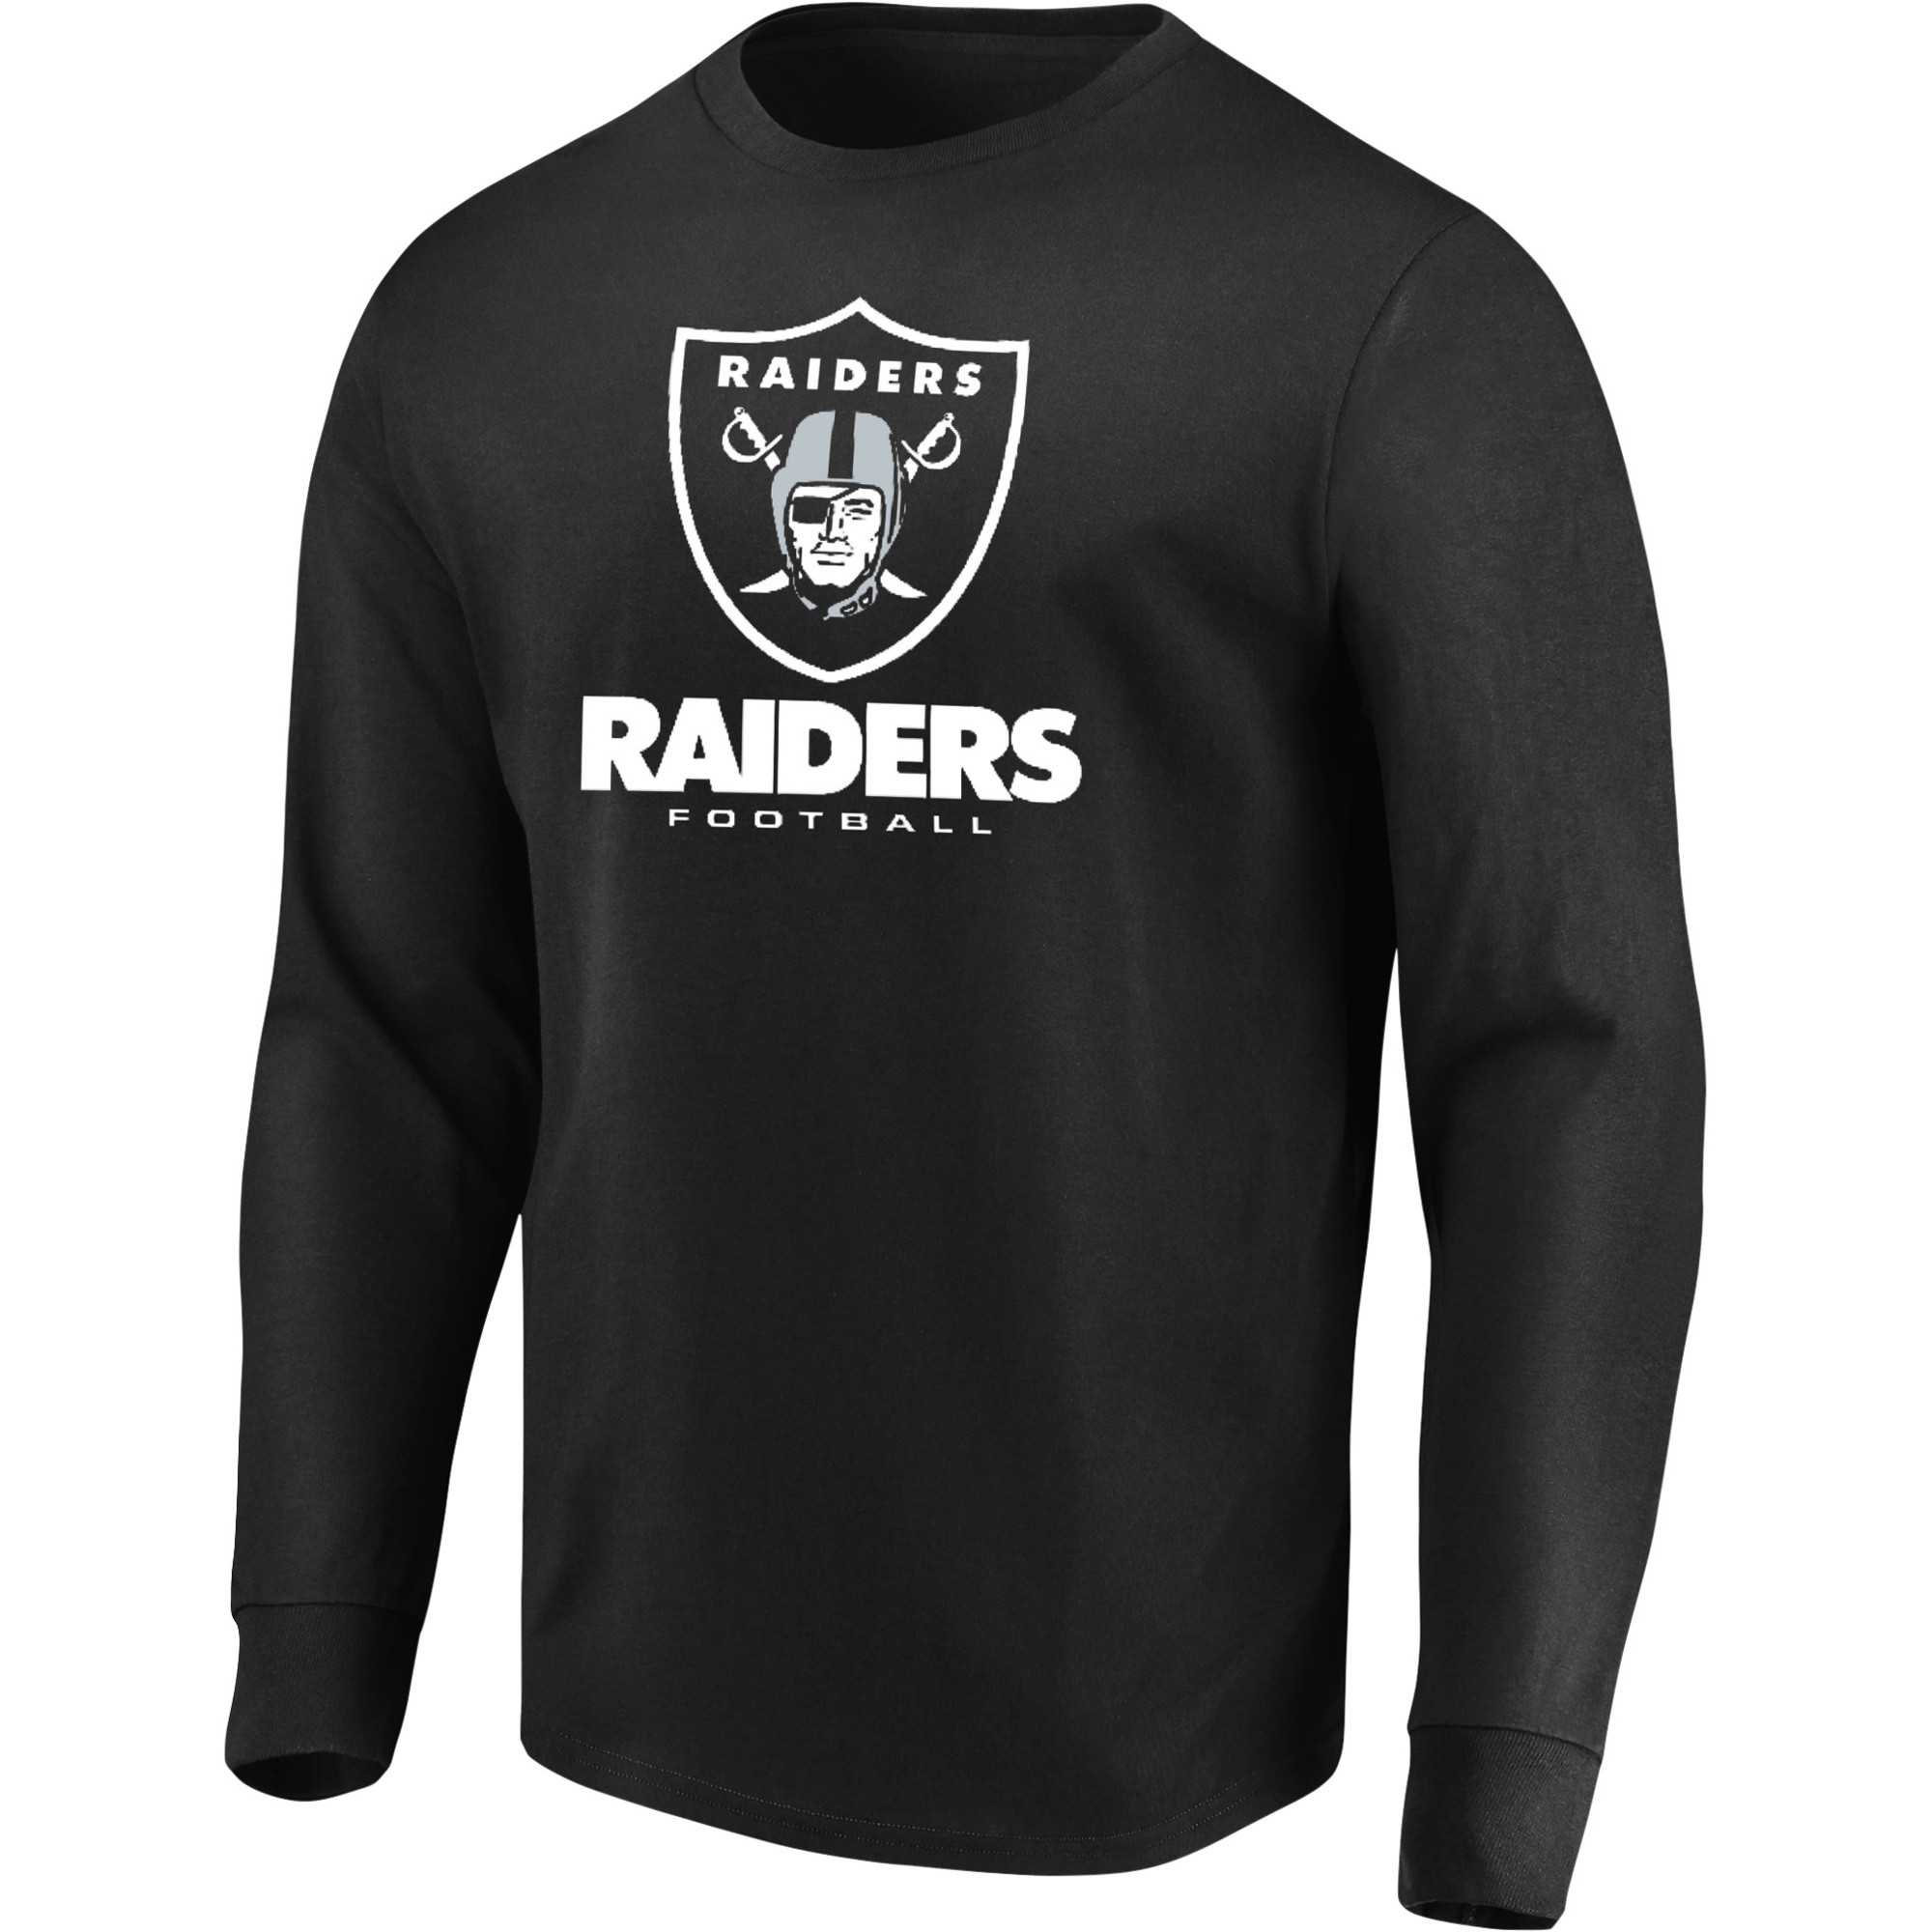 Men's Majestic Black Oakland Raiders Our Team Long Sleeve T-Shirt